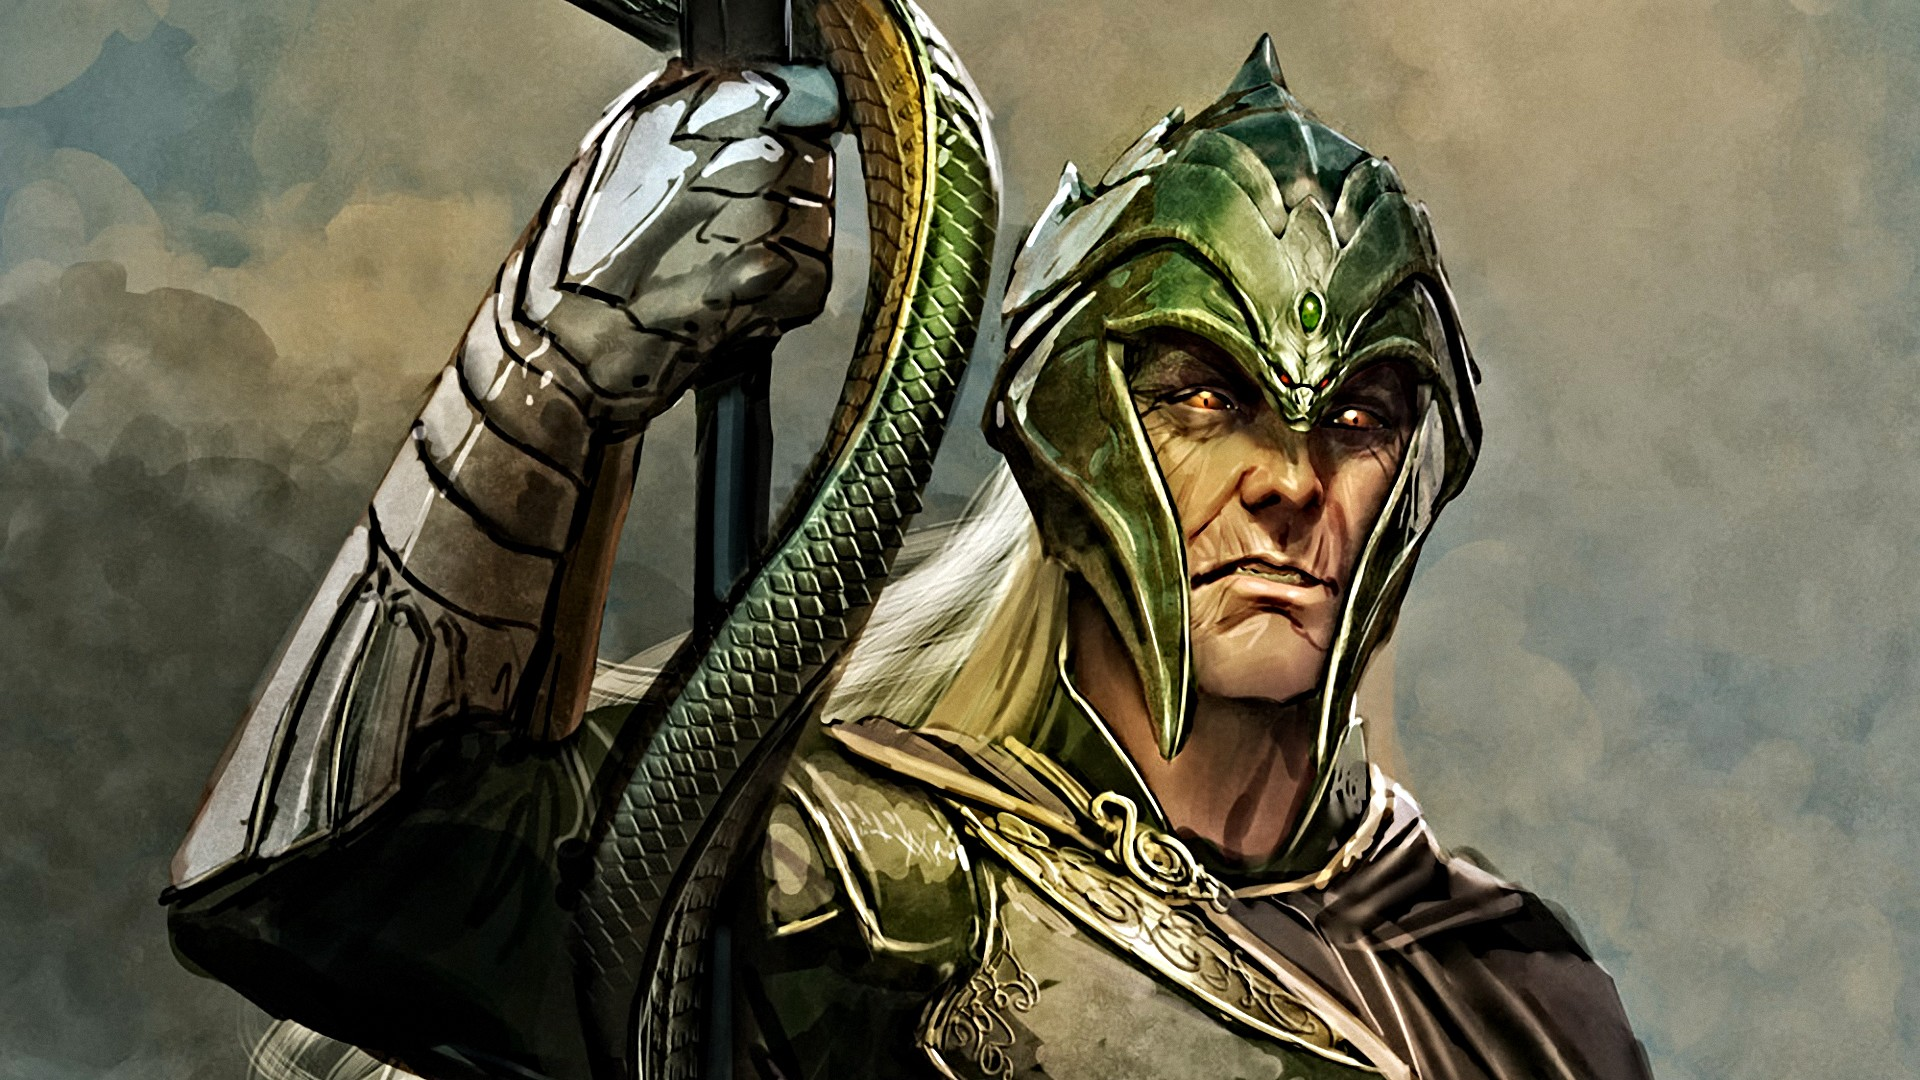 find more information about Elves or even videos related to Elves 1920x1080